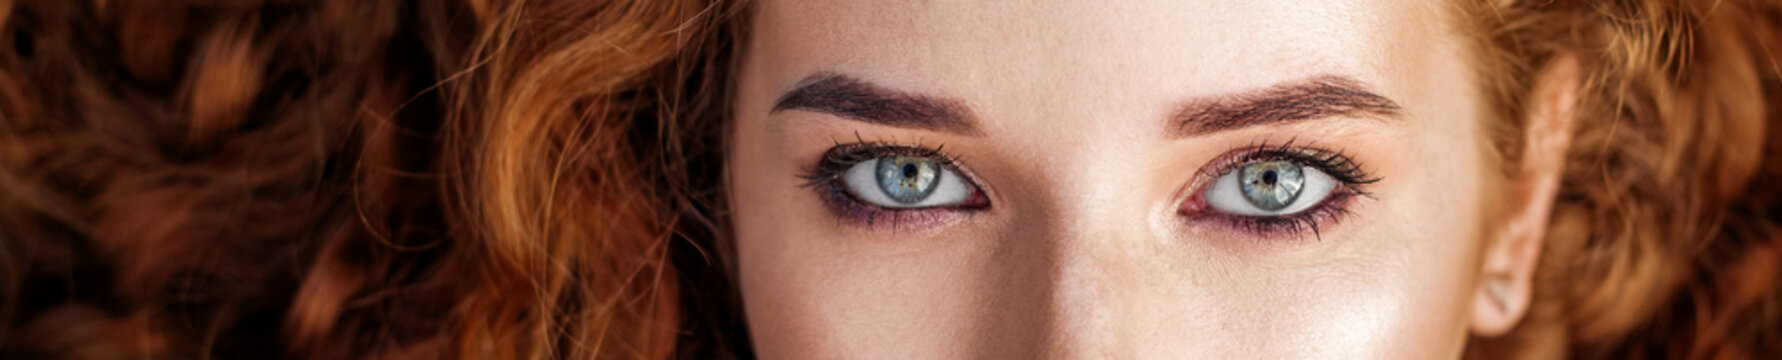 Women's eyes. Banner for the site. The concept of fashion, beauty, cosmetics and care